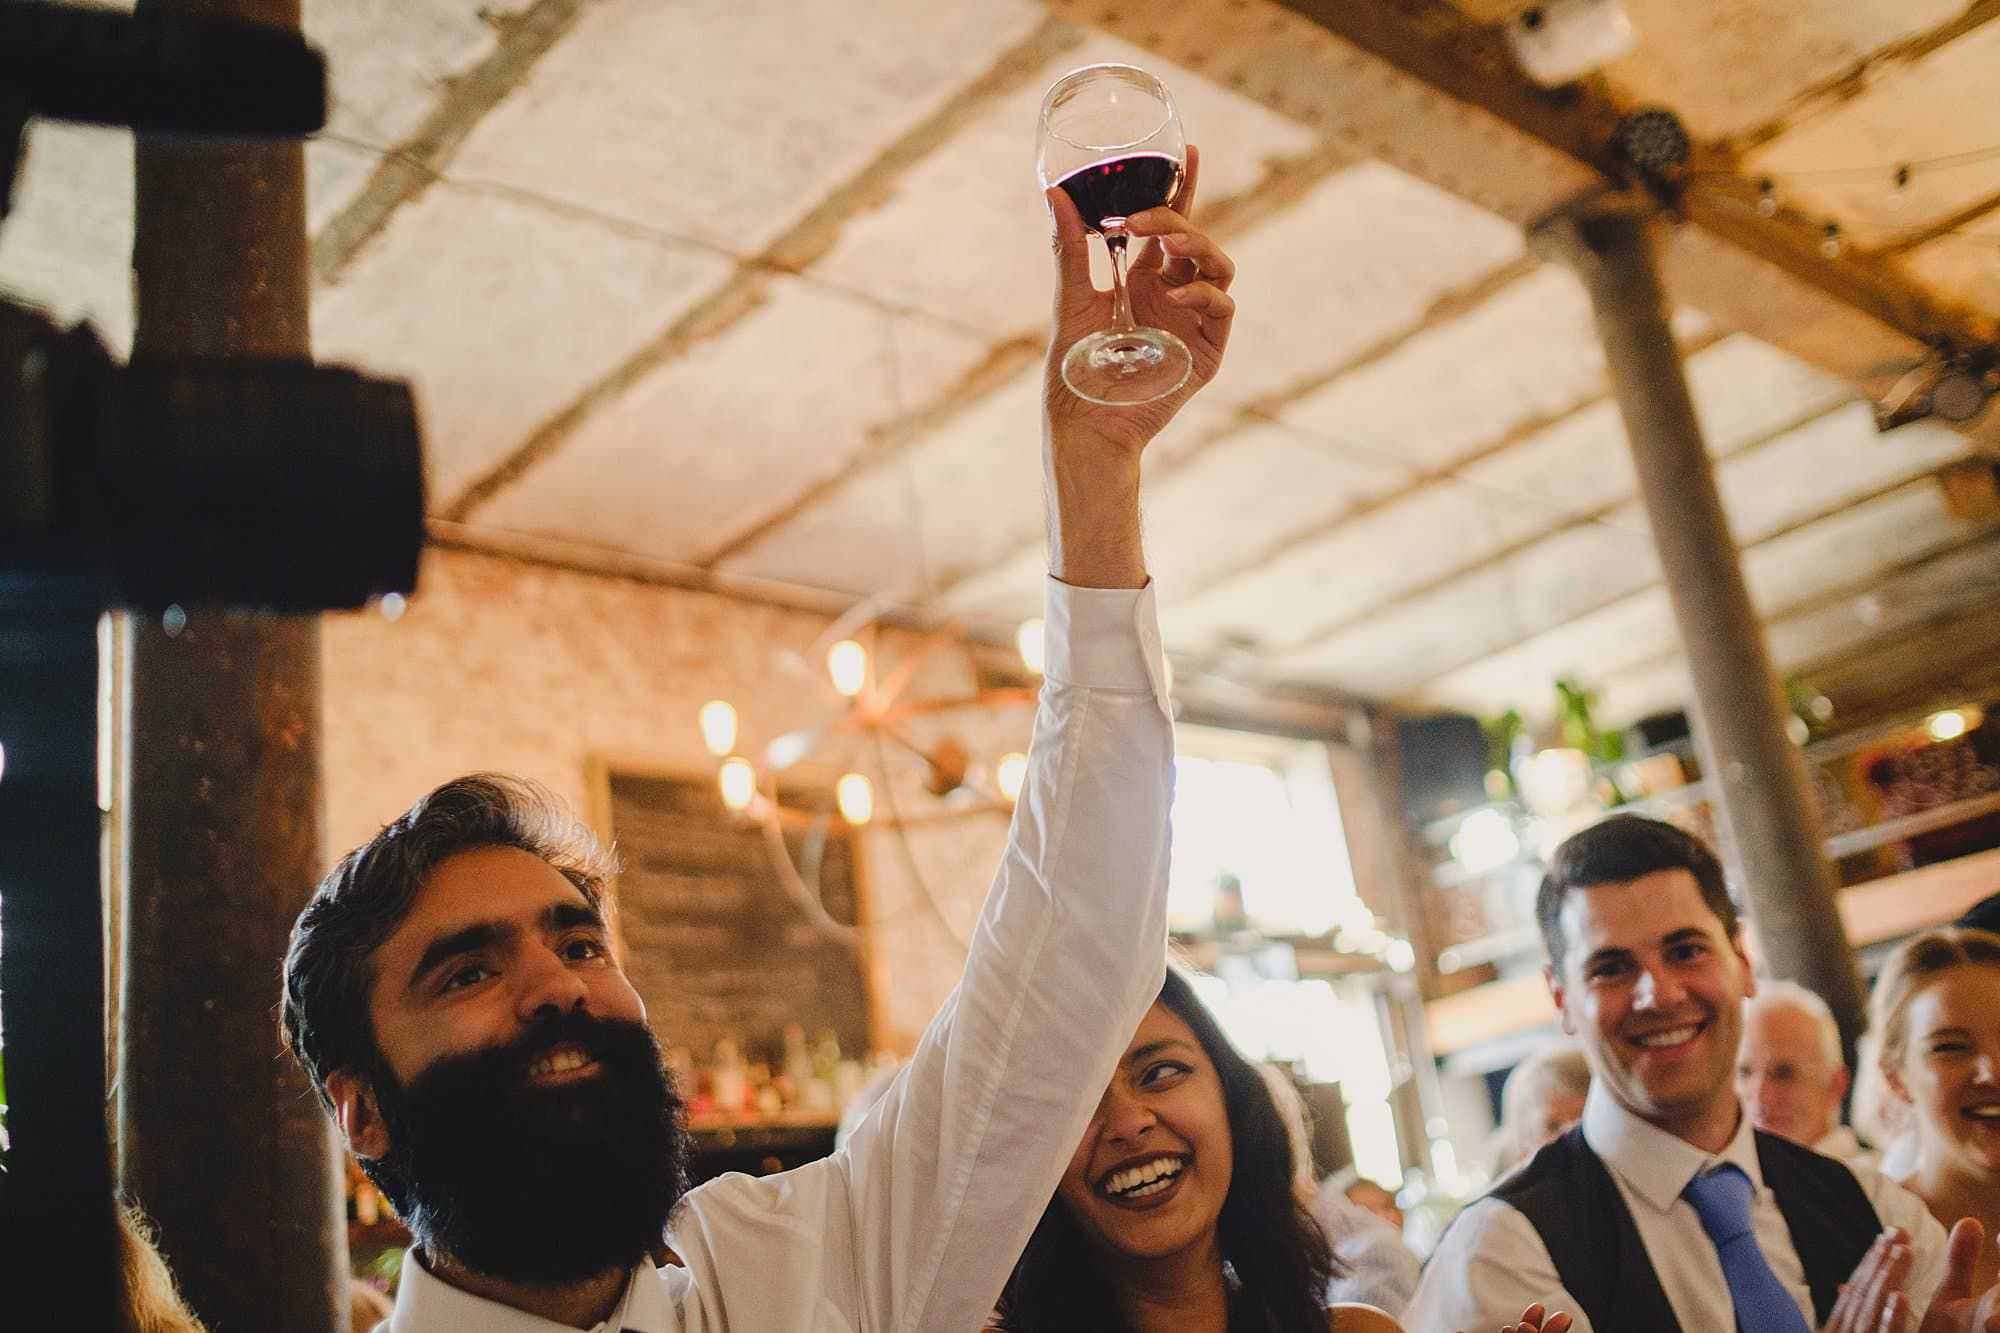 main with beard raising a glass of red wine during wedding speeches